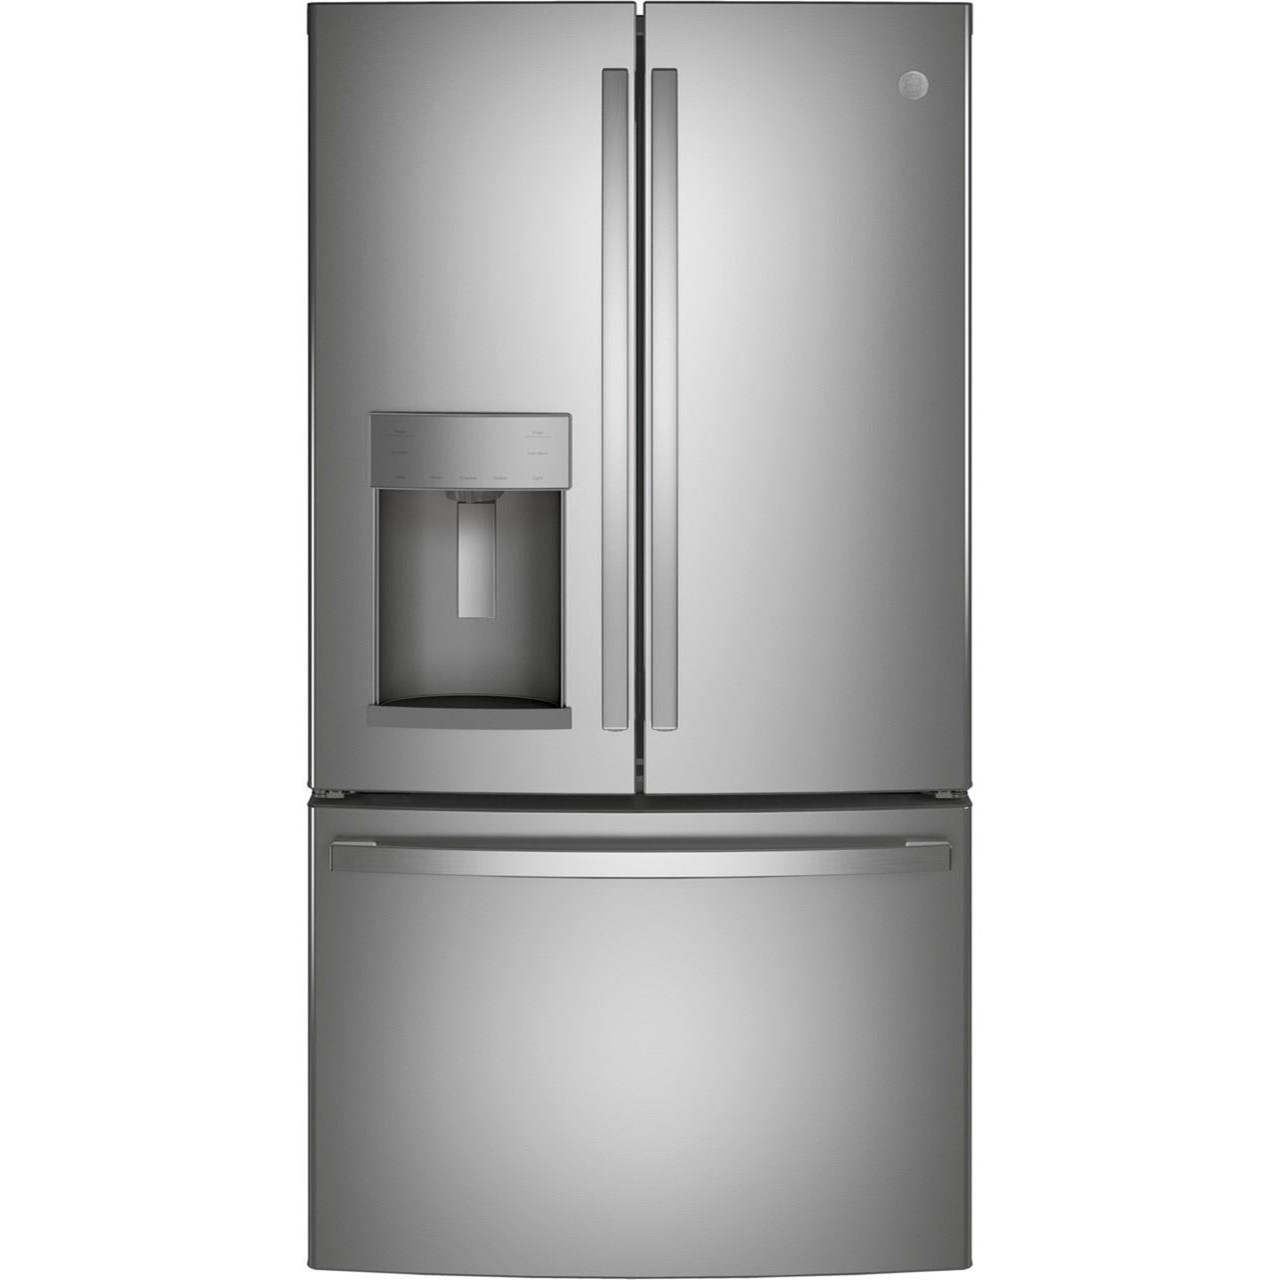 GE French Door Refrigerators GE® ENERGY STAR® 27.7 Cu. Ft. French-Door Re by GE Appliances at Furniture and ApplianceMart